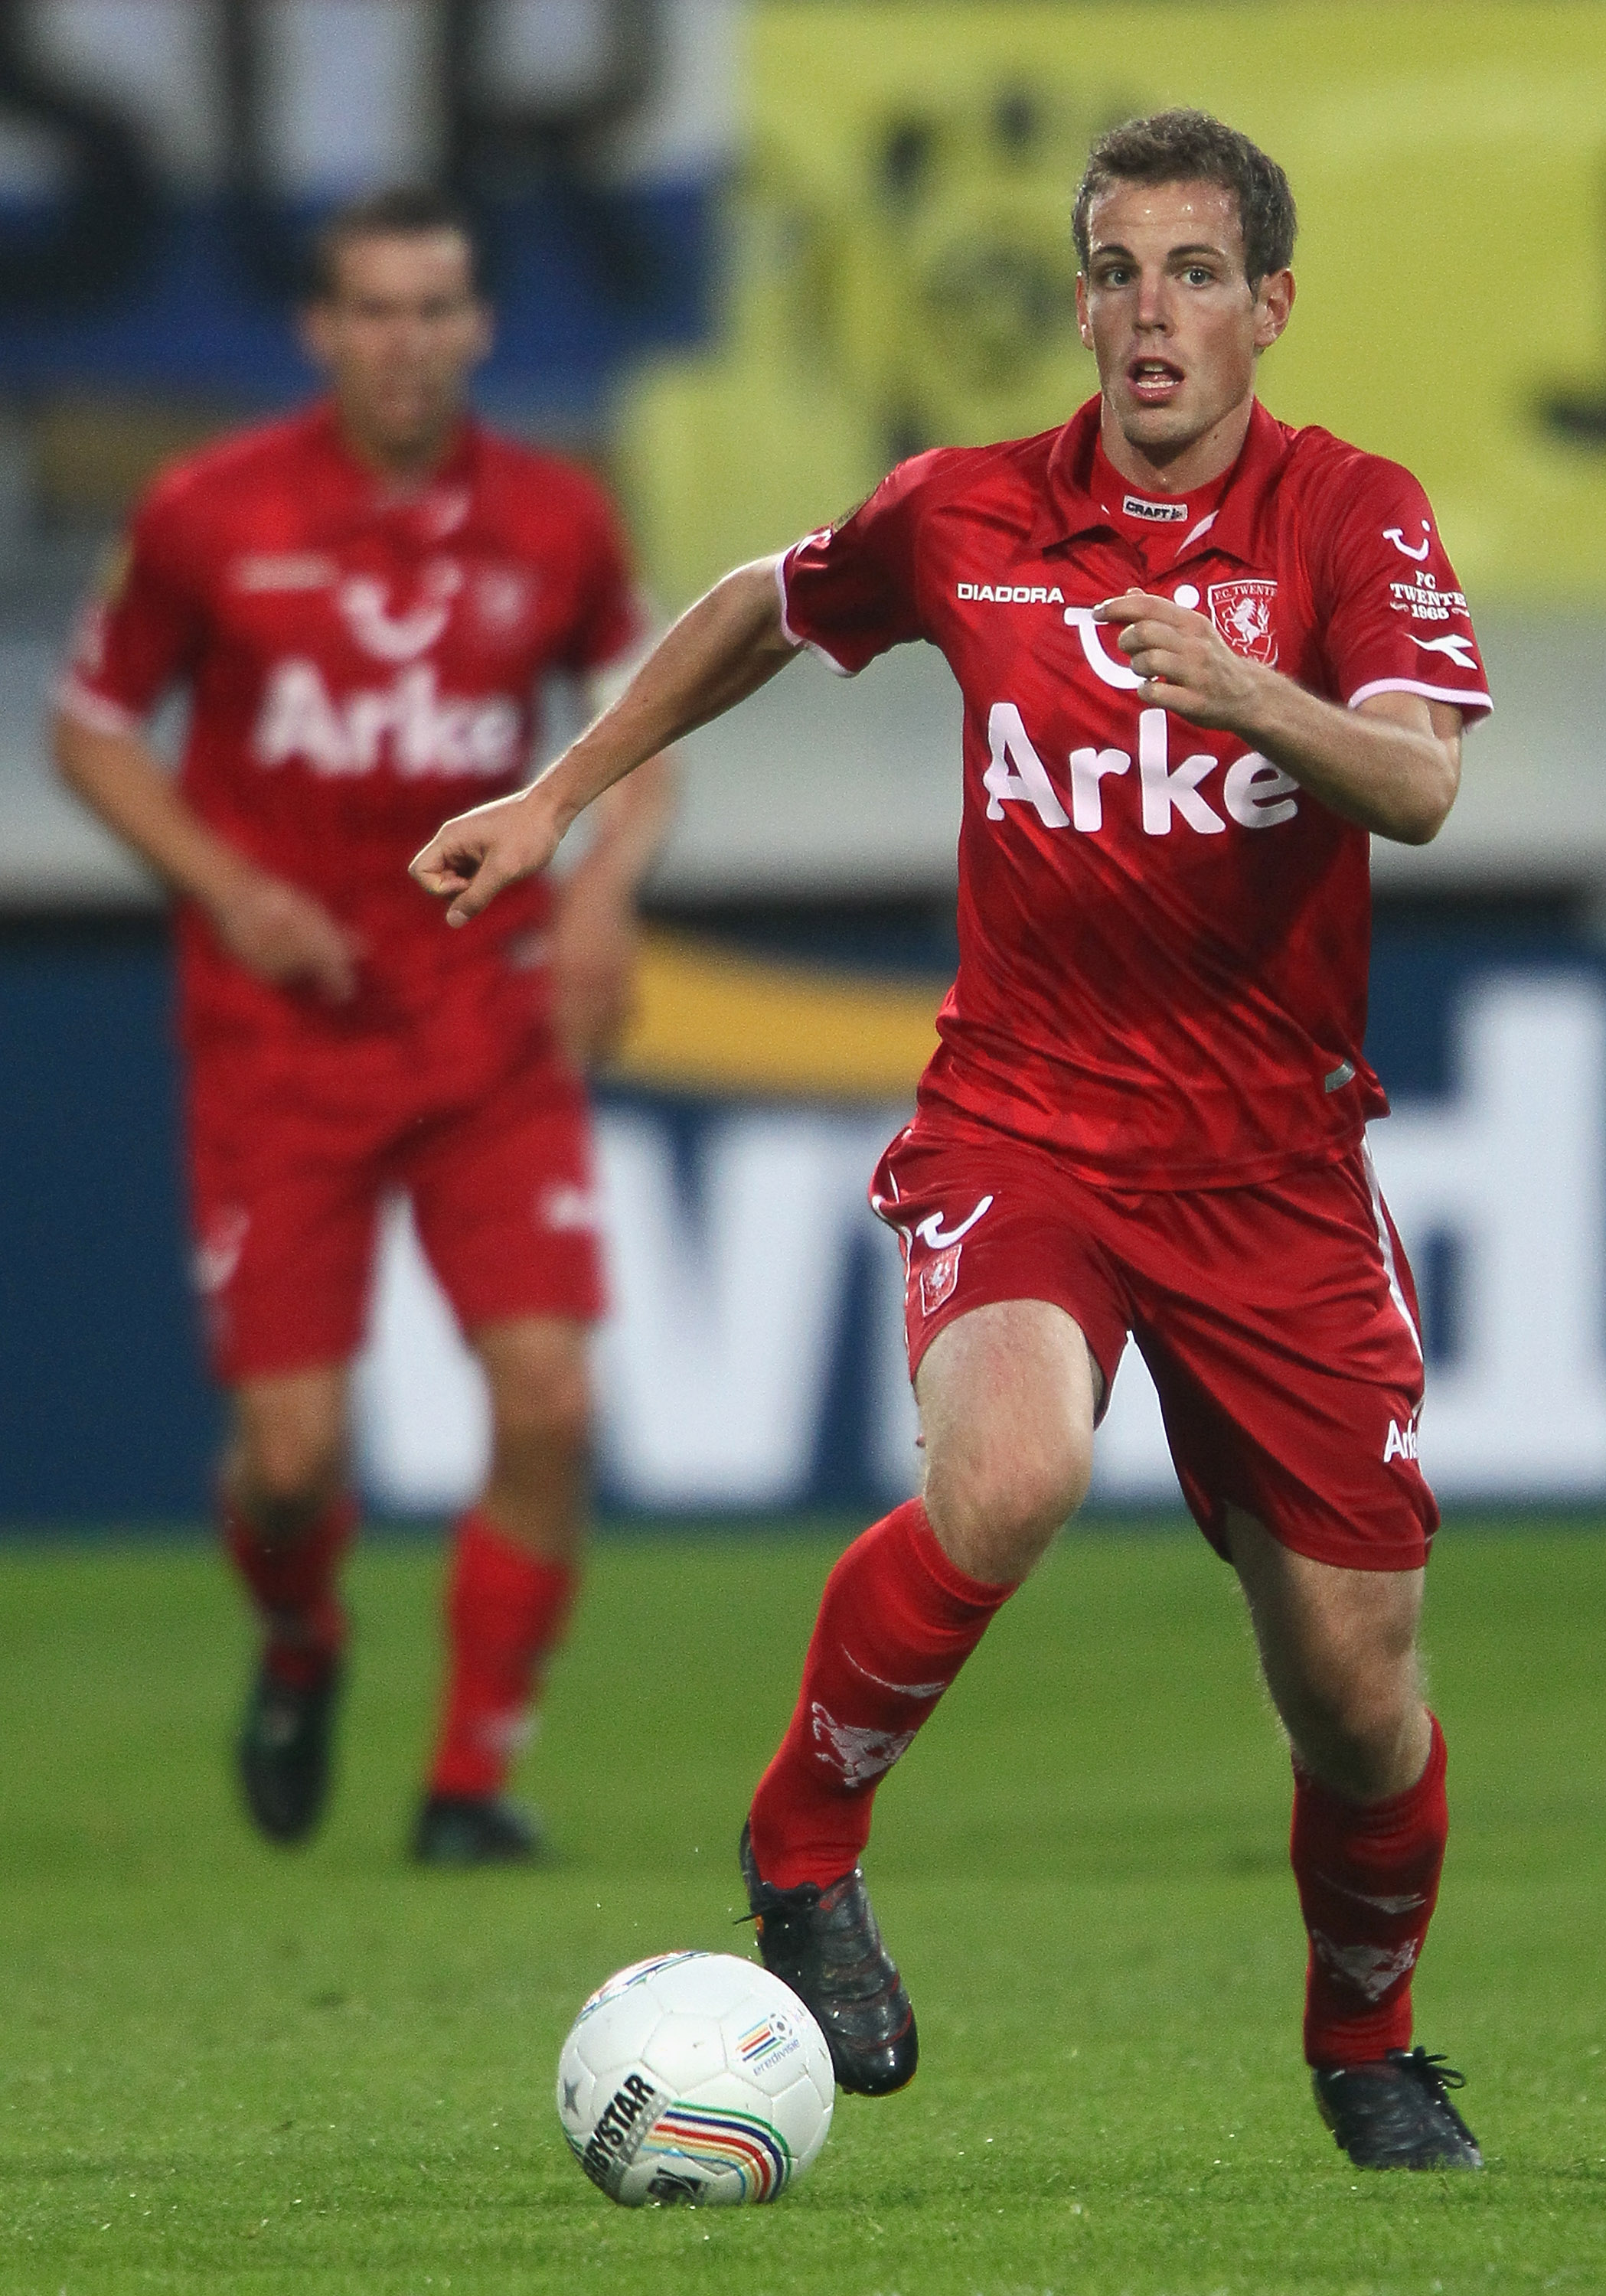 KERKRADE, NETHERLANDS - AUGUST 06:  Wout Brama of Enschede runs with the ball during the Eredivisie match between Roda and Twente at Parkstad Limburg stadium on August 6, 2010 in Kerkrade, Netherlands.  (Photo by Christof Koepsel/Getty Images)